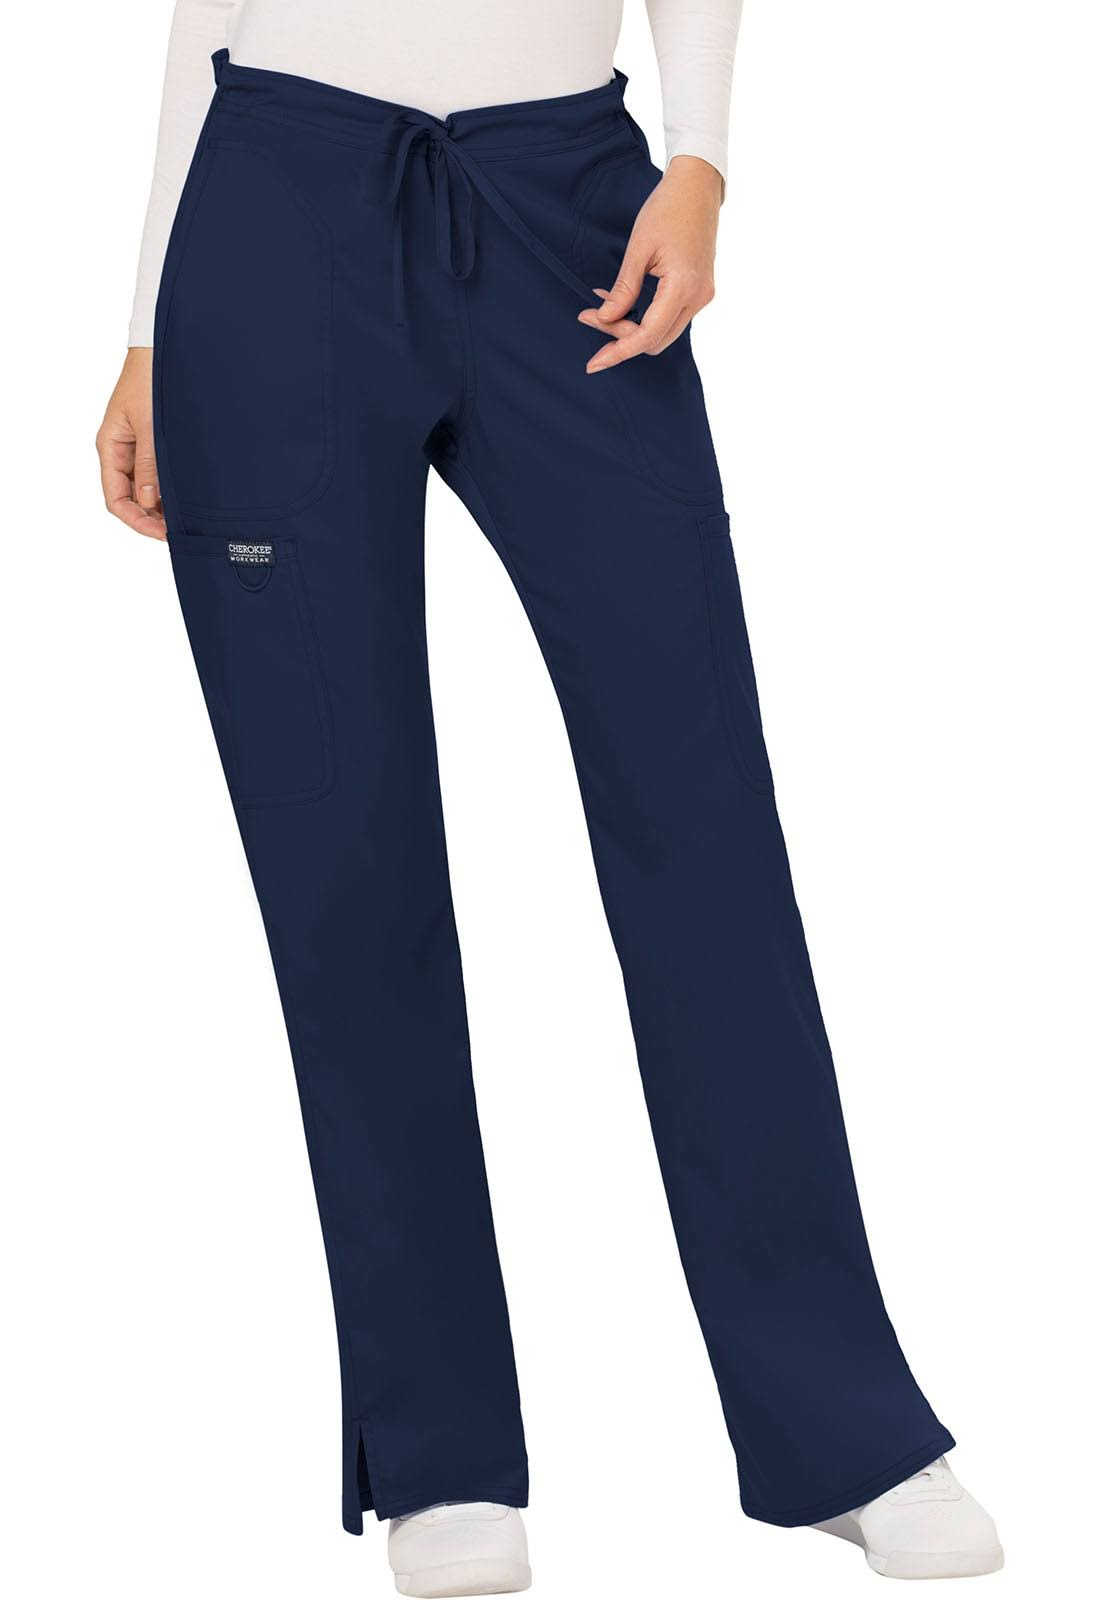 Cherokee Workwear Revolution Womens Mid Rise Moderate Flare Drawstring Pant - Navy (XL)